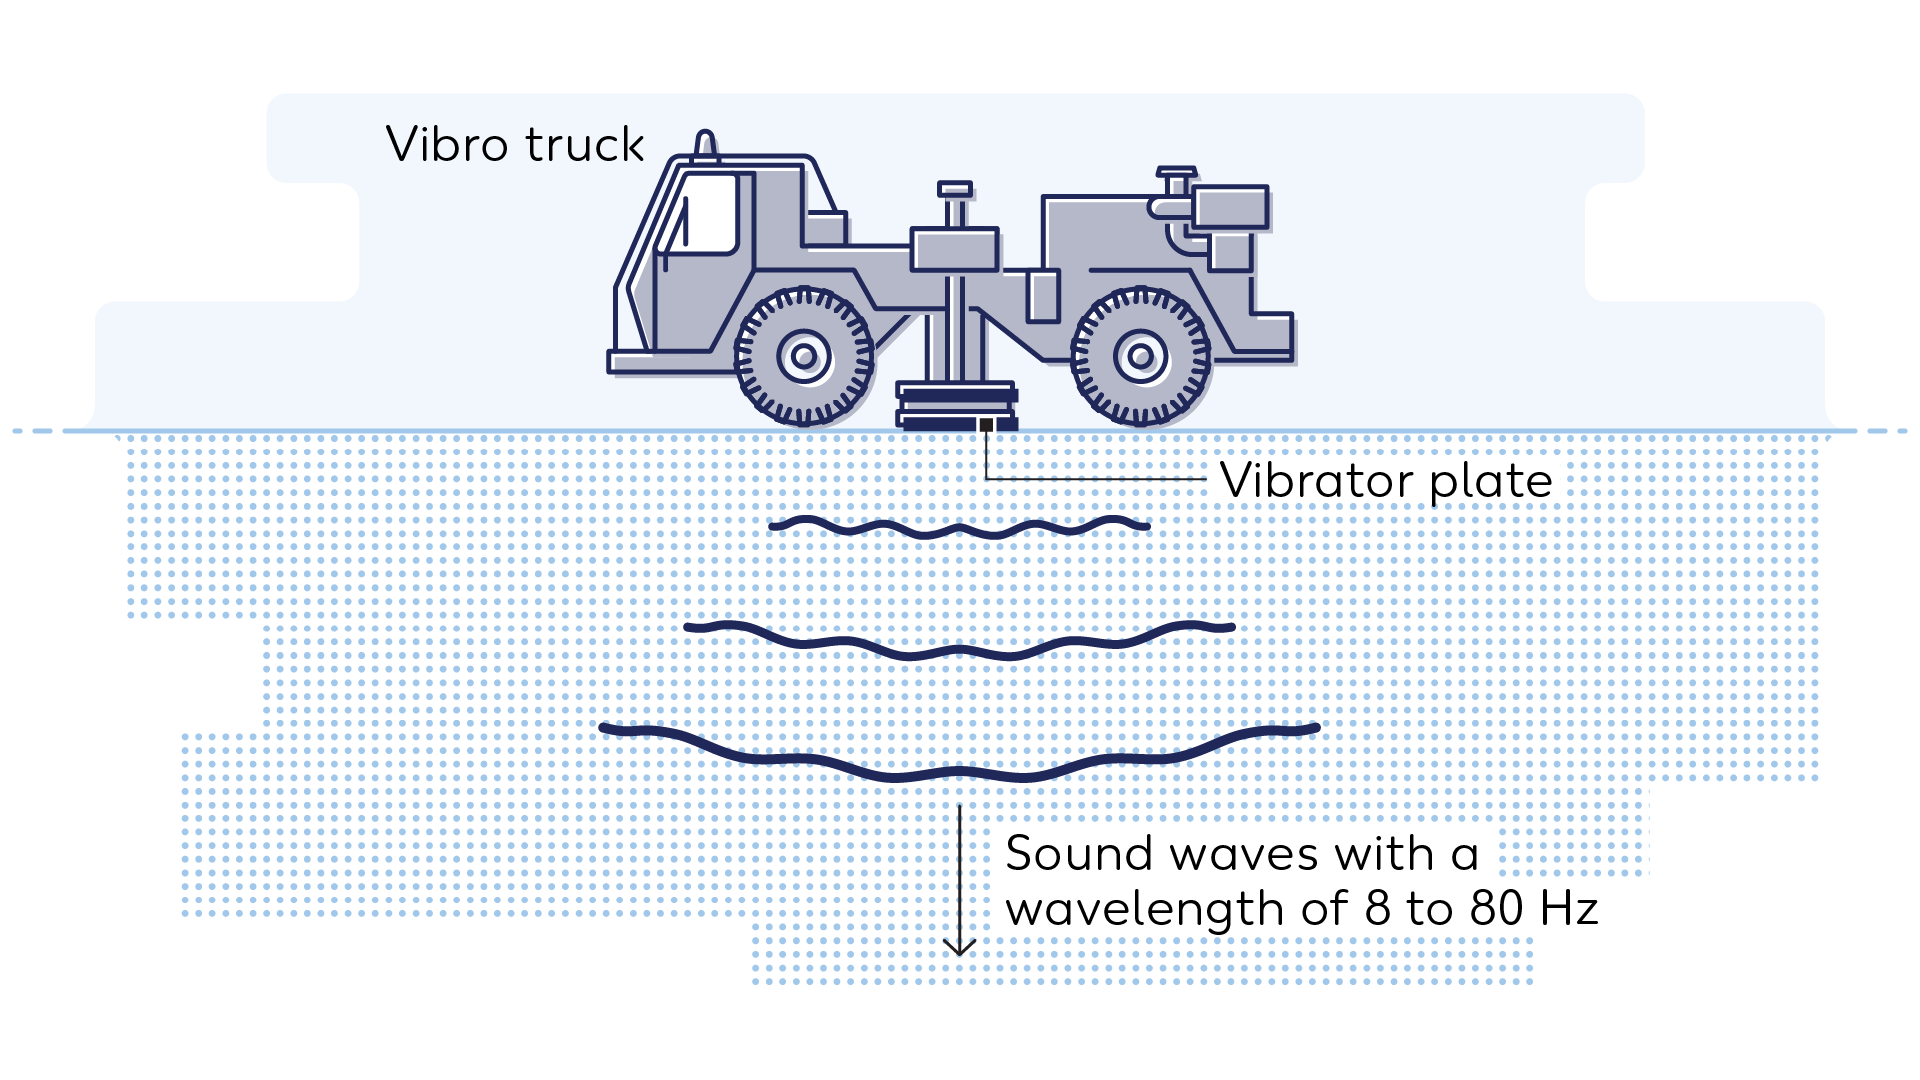 Wintershall Dea Graphic Vibro Truck Sound waves